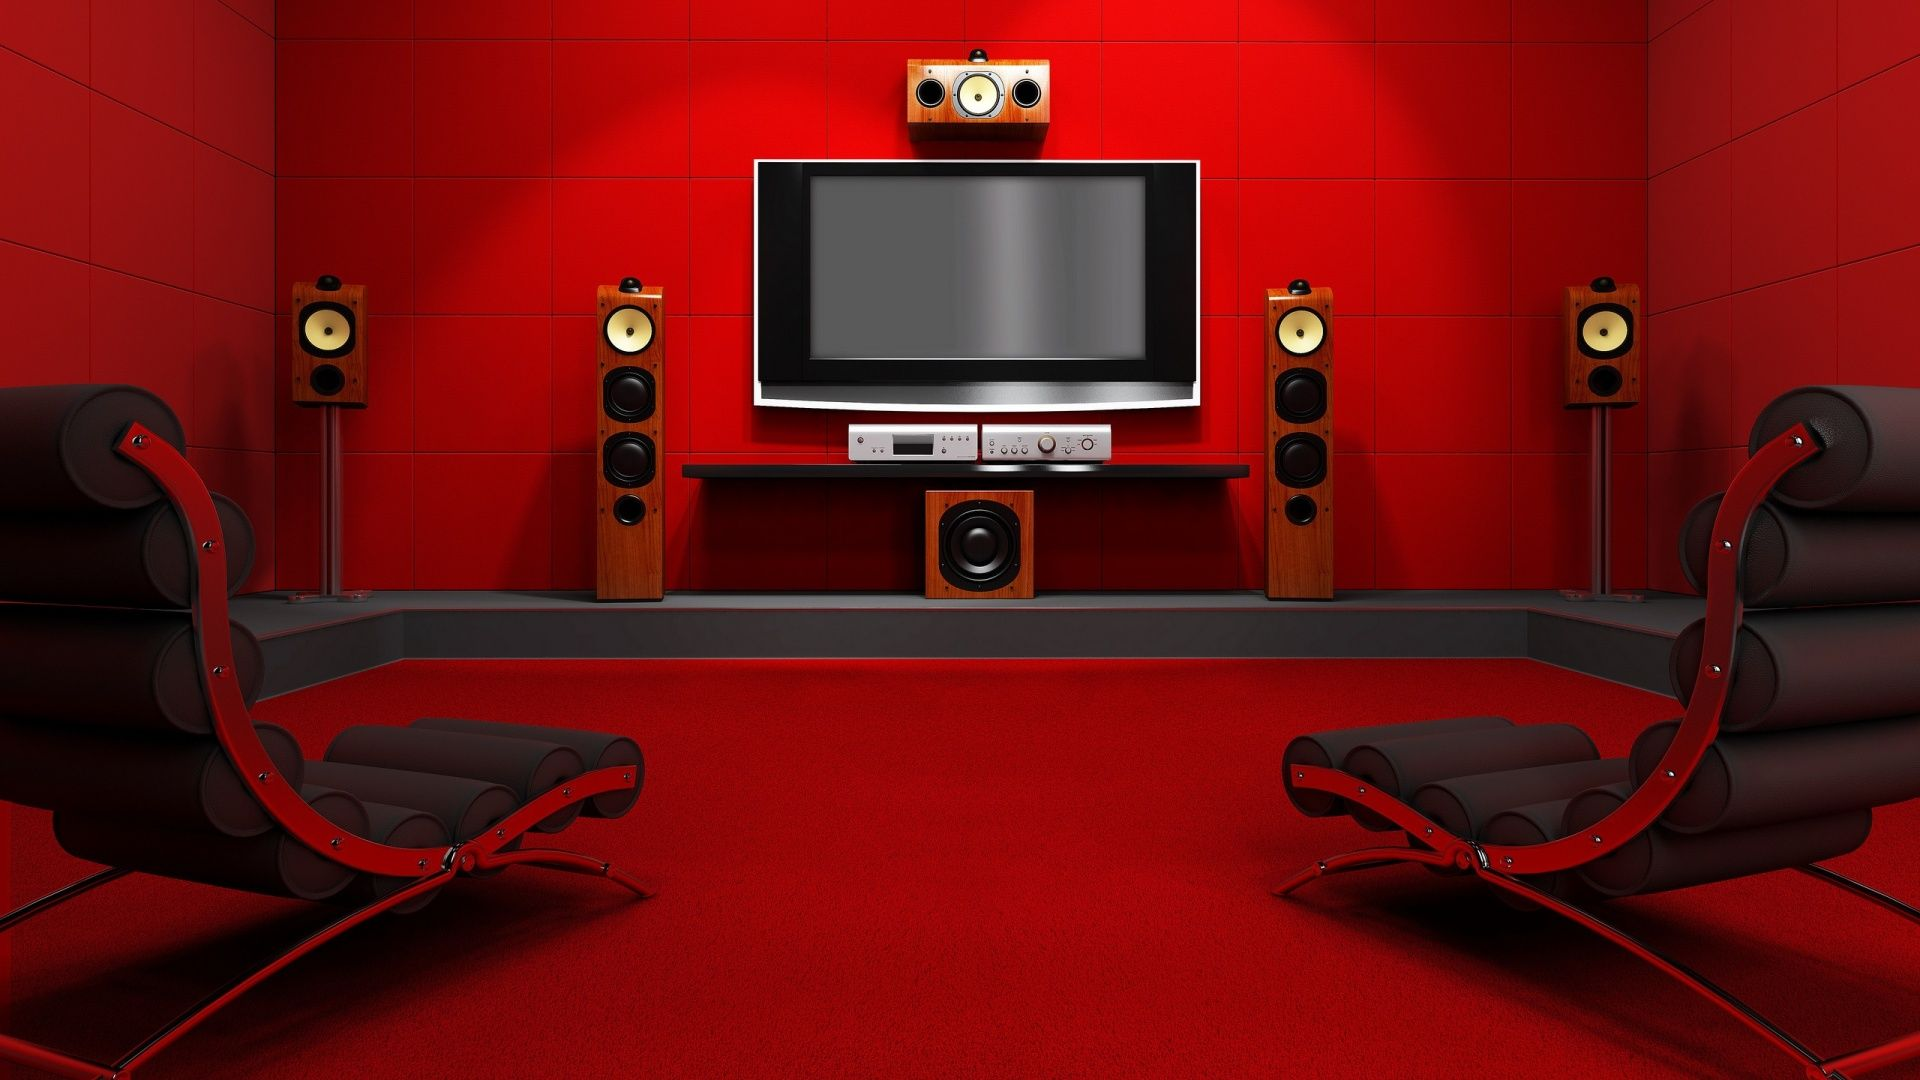 Room Red image for simple movie room ideas wallpaper free desktop | things